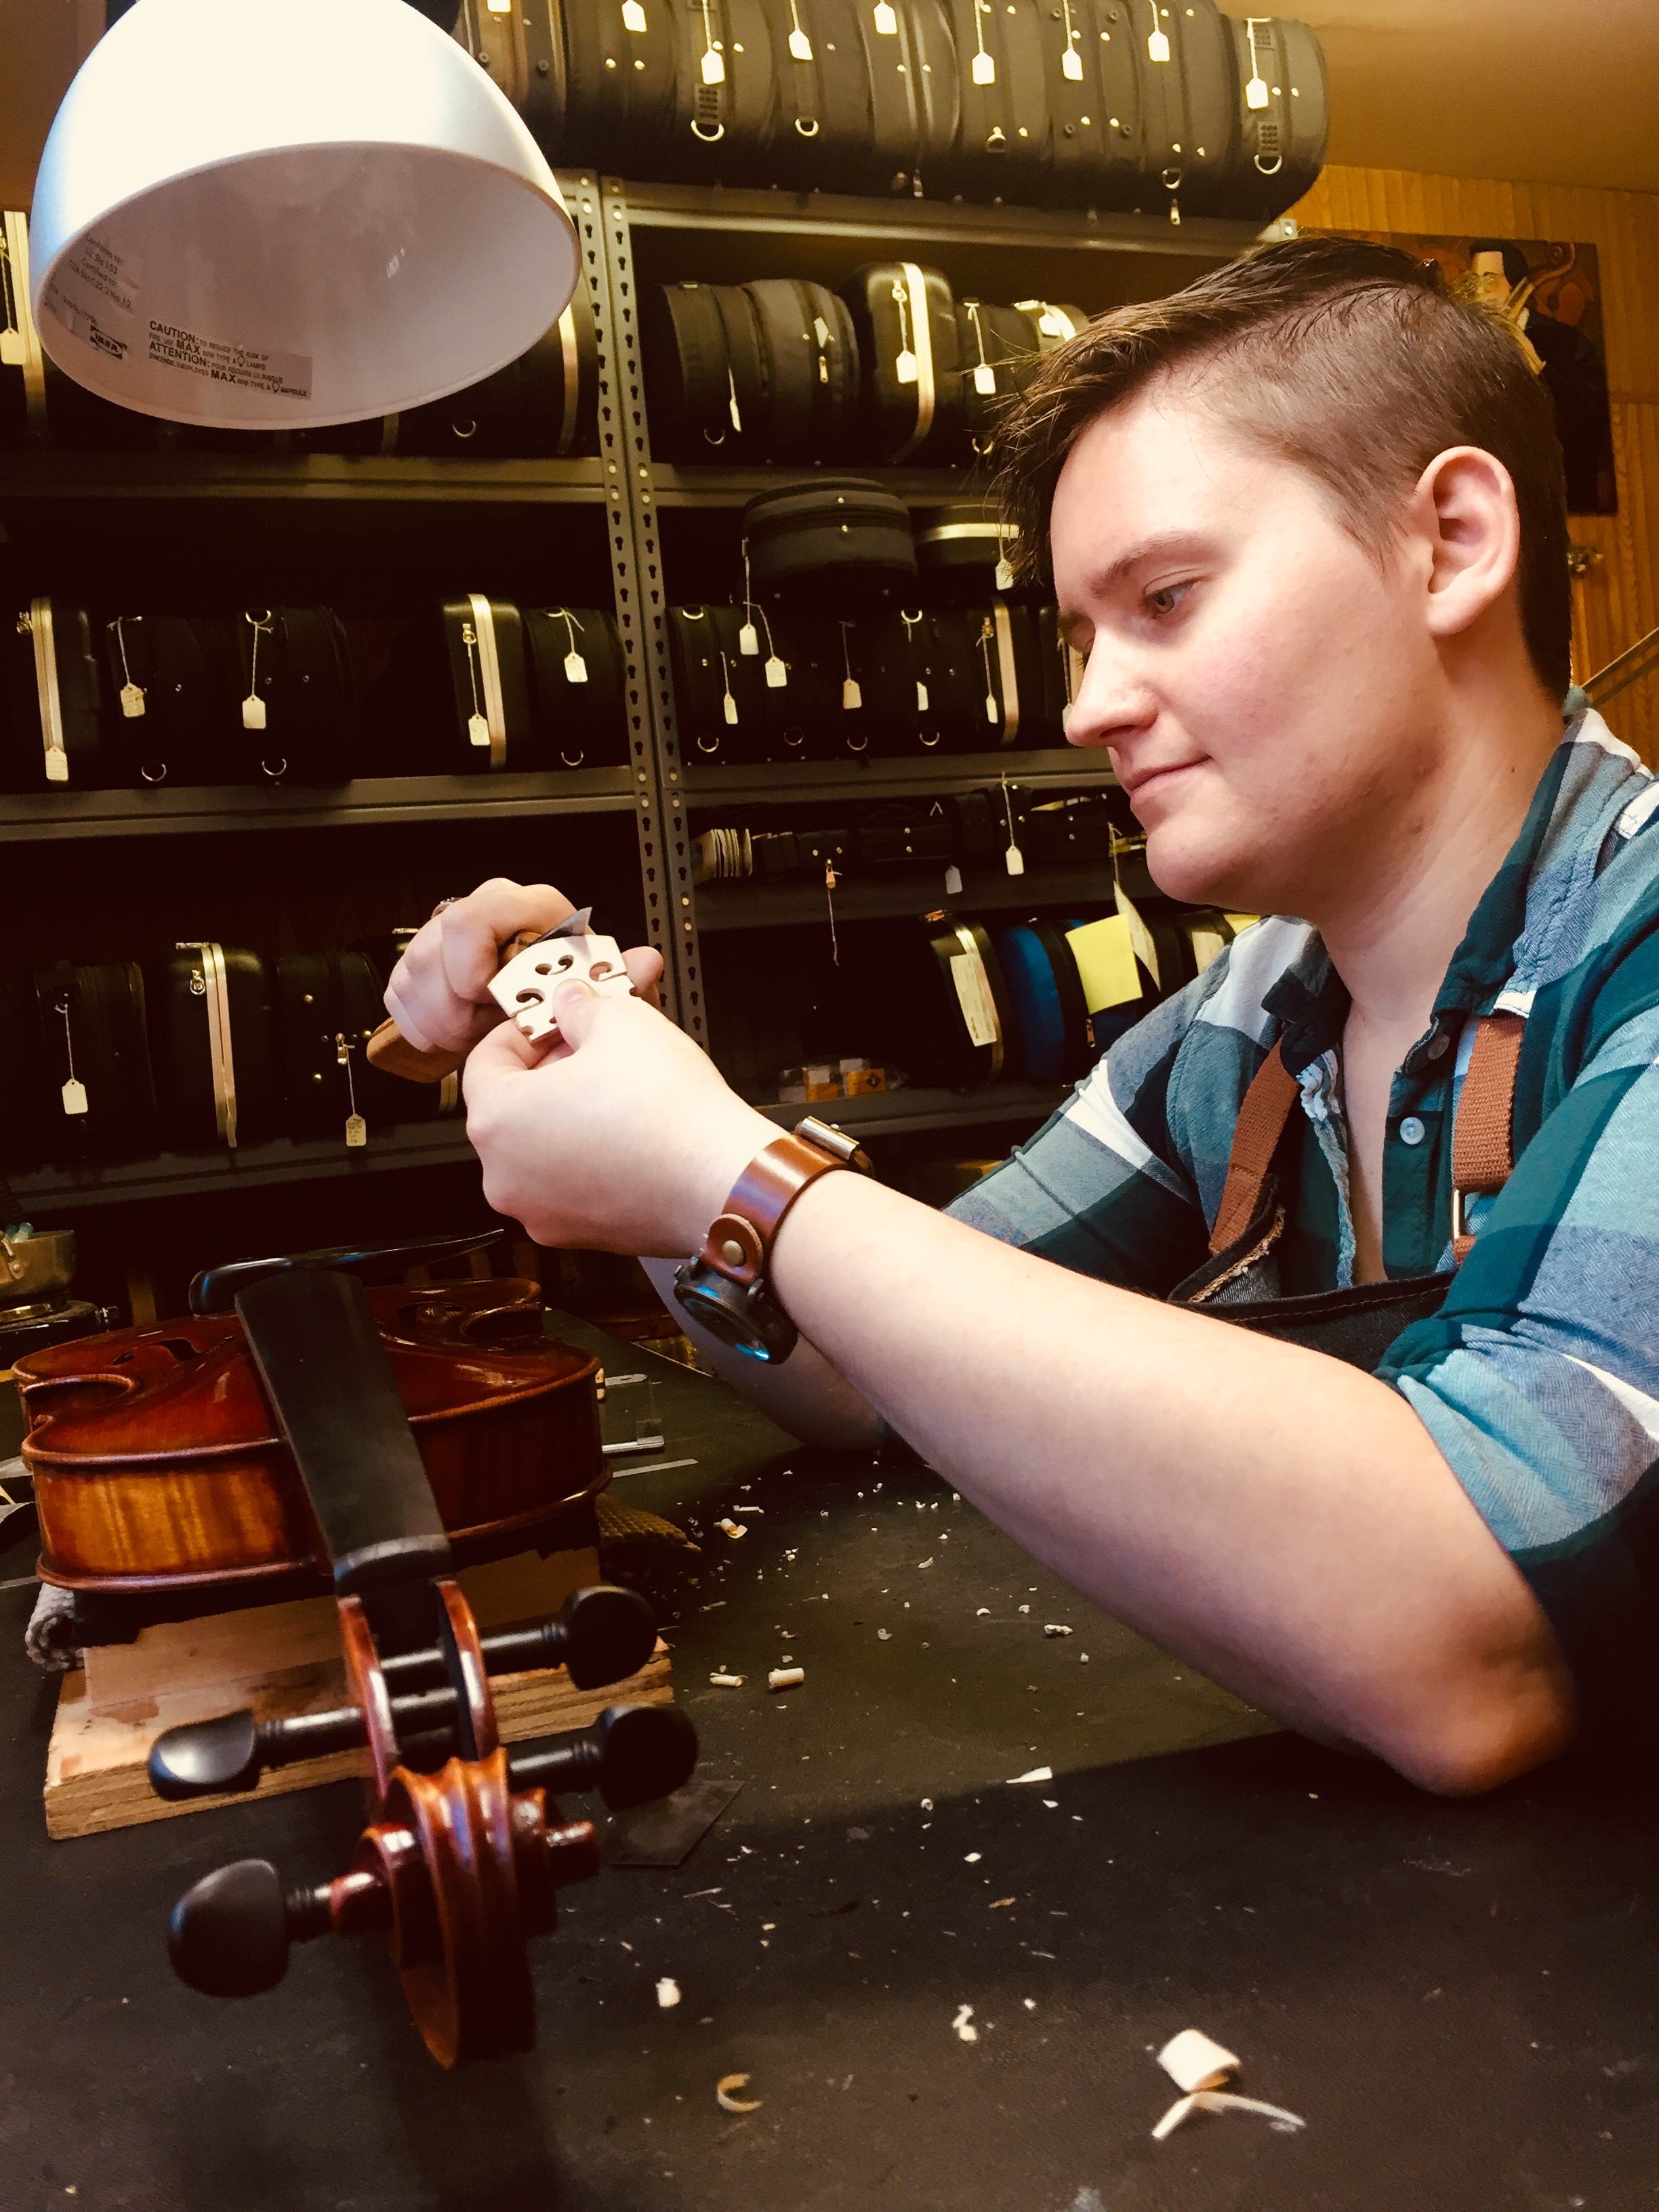 Cat Autrey - Certified Luthier - Cat is a graduate of Red Wing Violin Repair School, class of 2016 that studied under Lisbeth Nelson Butler in Red Wing, Minnesota.  She is a Tulsa native and Union High School graduate.  Since beginning at Tulsa Strings in 2016  Cat has provided her expertise with instrument and bow repair, setups, and instrument making.  Cat has a passion for the history and art of luthiery.   Attention to detail and meticulous accuracy make her an invaluable part of the Tulsa Strings workshop.     Cat also plays with the local community orchestra on violin at TCC.